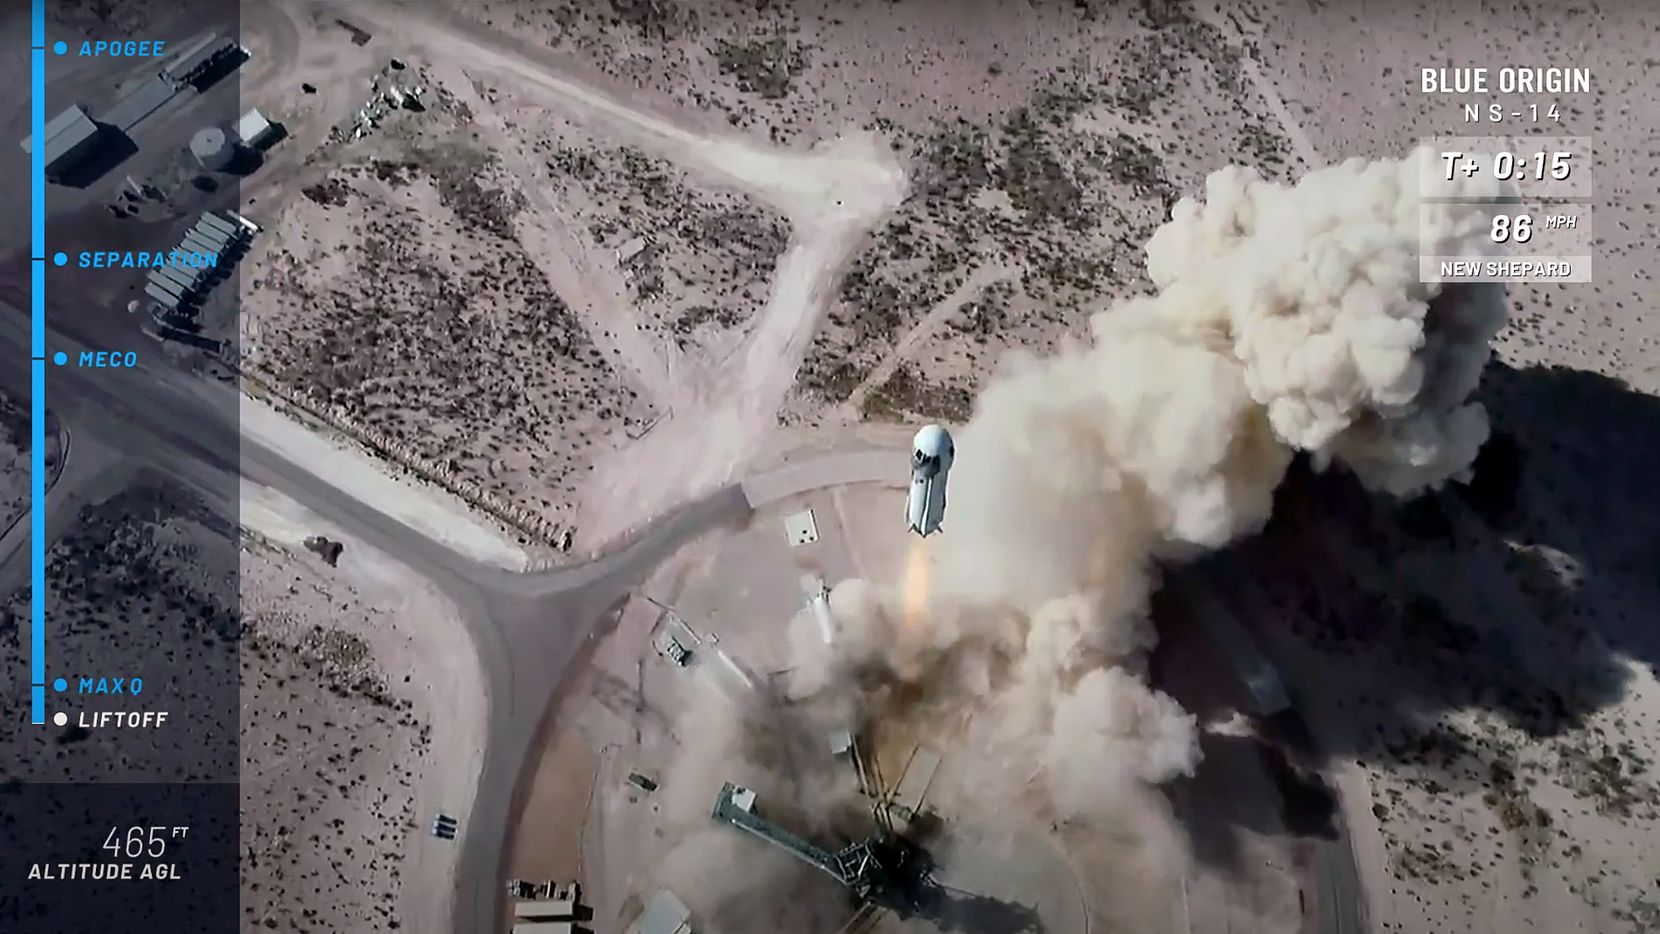 Blue Origin launches capsule to space from Van Horn with astronaut perks 1